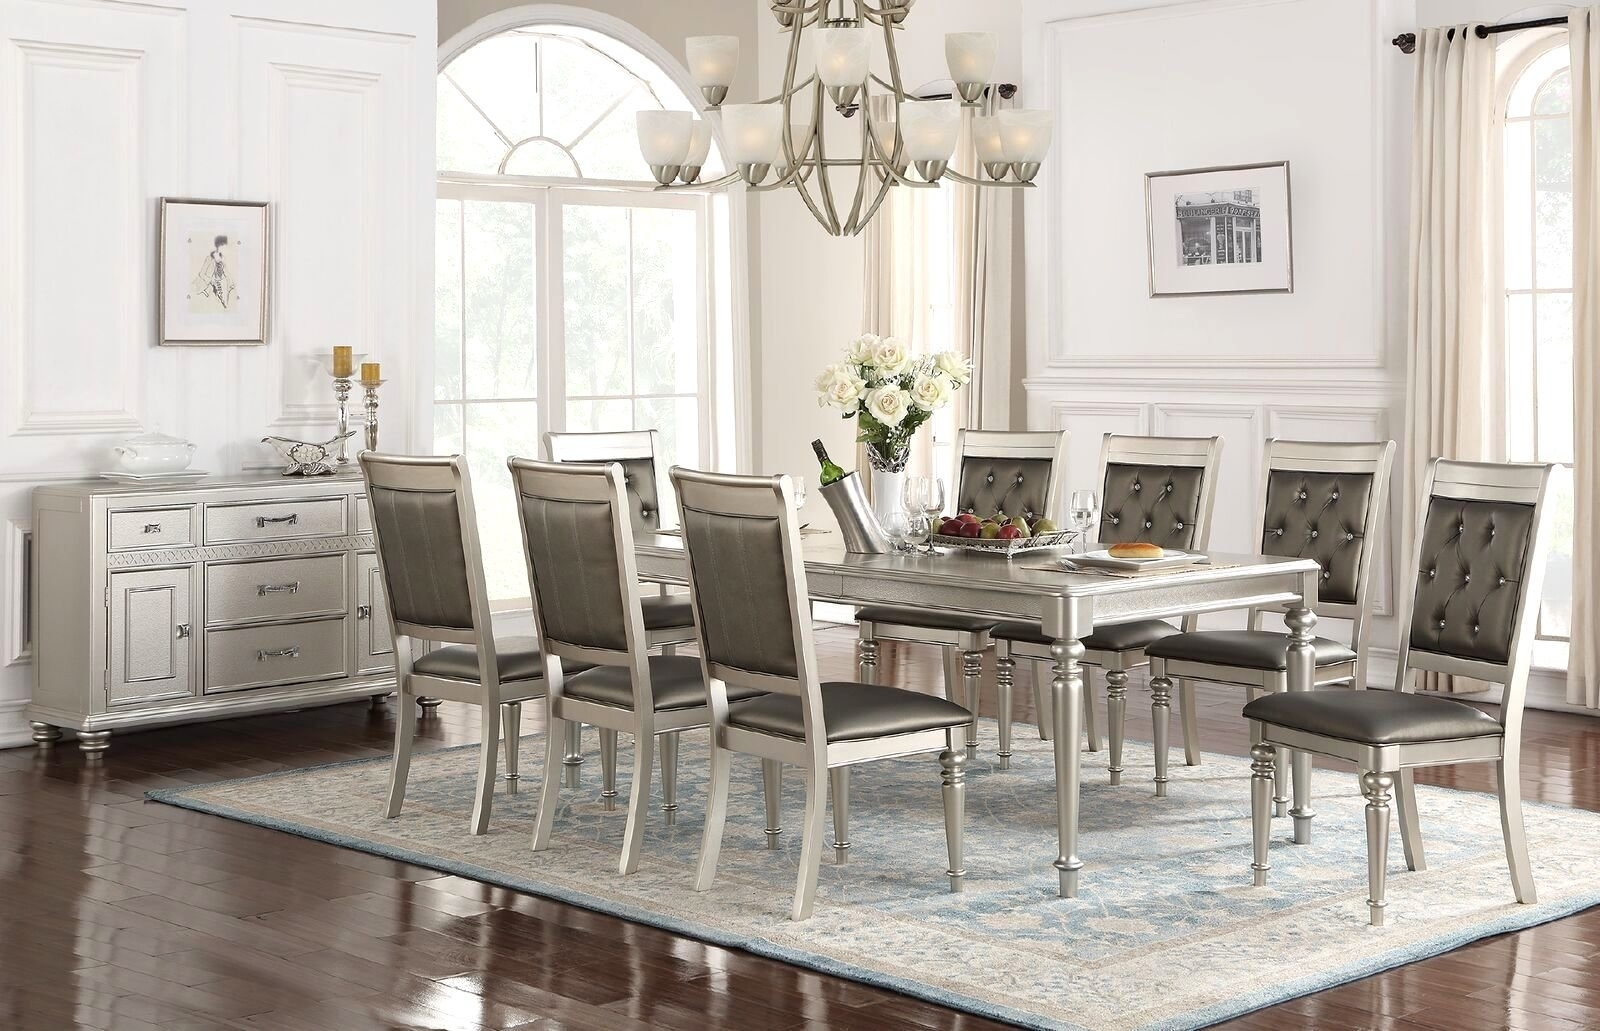 9 Piece Dining Sets You'll Love | Wayfair Throughout Recent Caira 9 Piece Extension Dining Sets (Image 4 of 20)